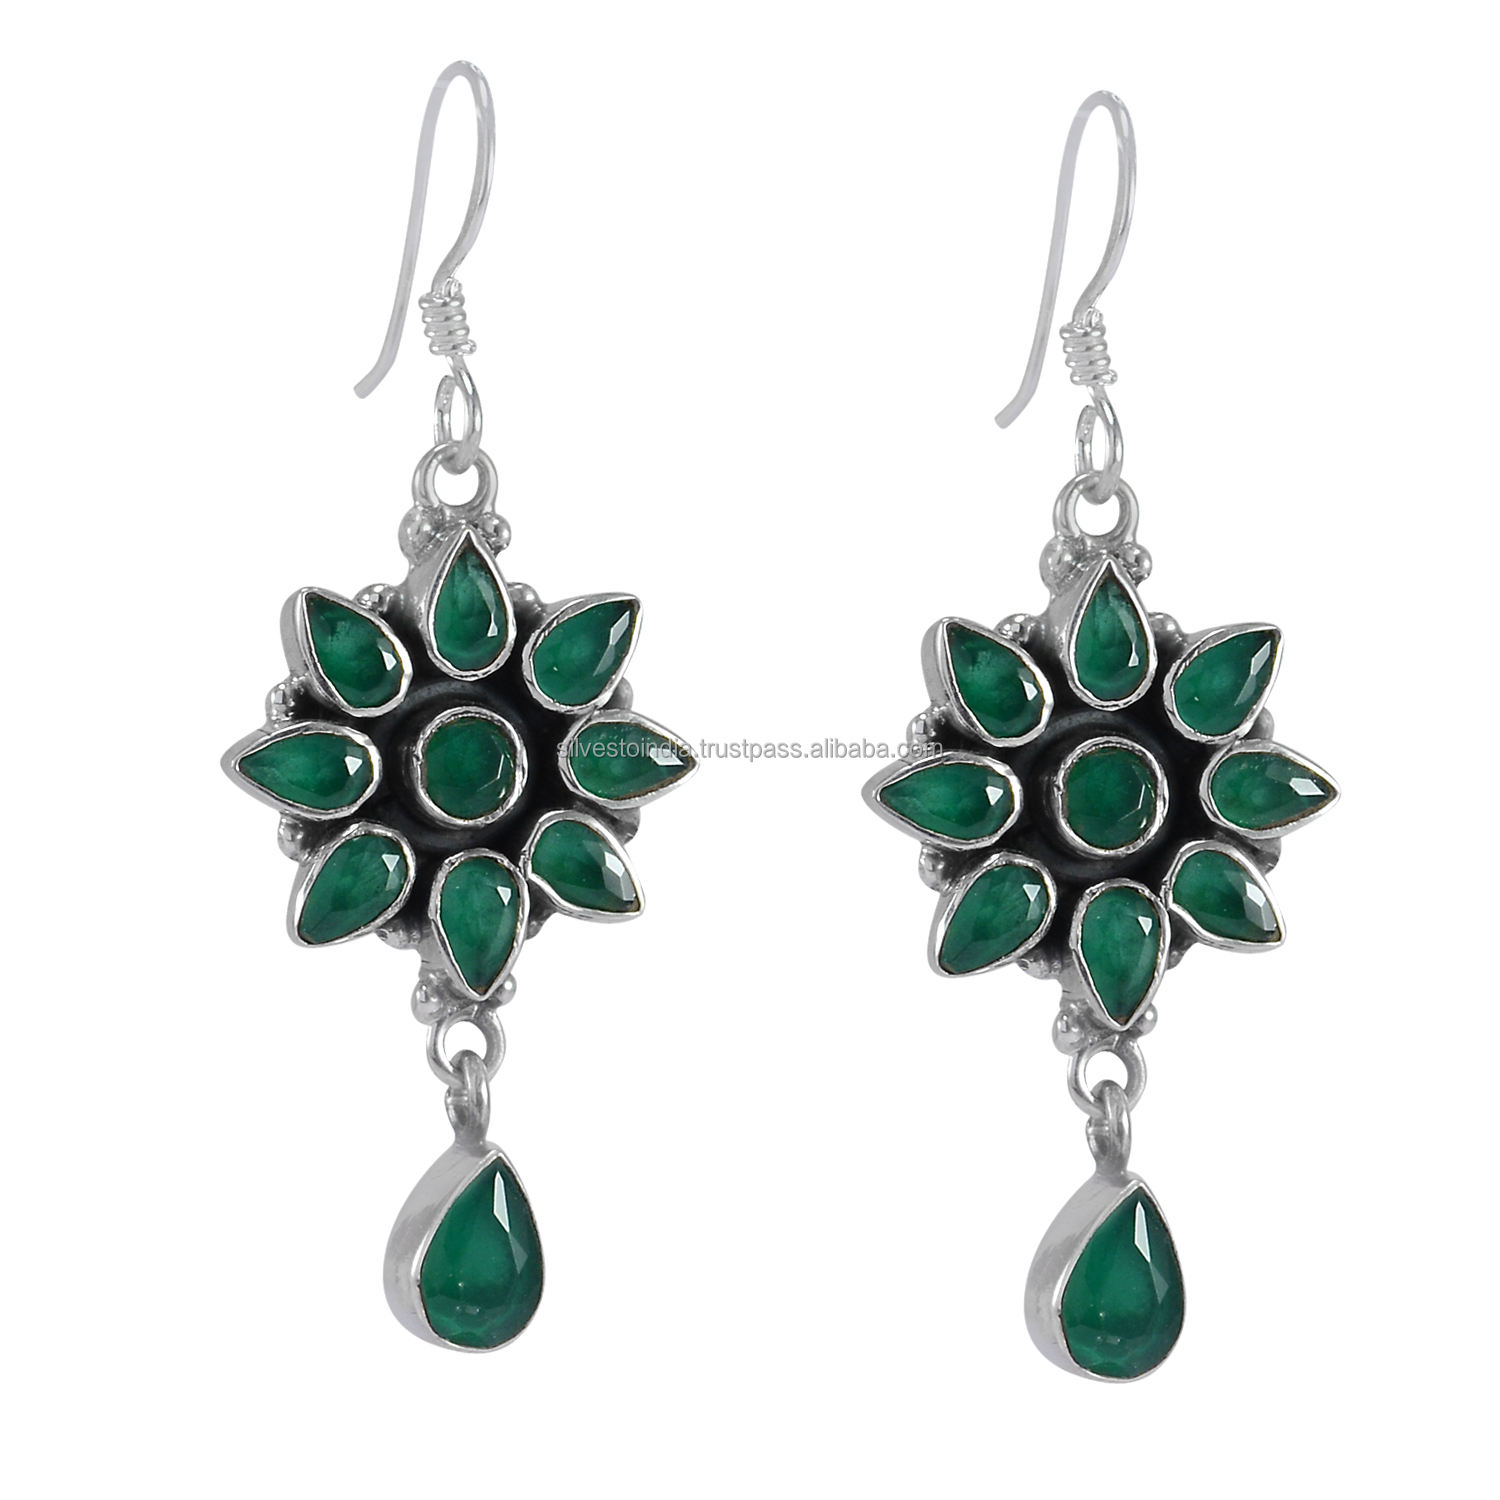 Handmade Jewelry Manufacturer Green Onyx 925 Sterling Silver Jaipur Rajasthan India Dangle new earring